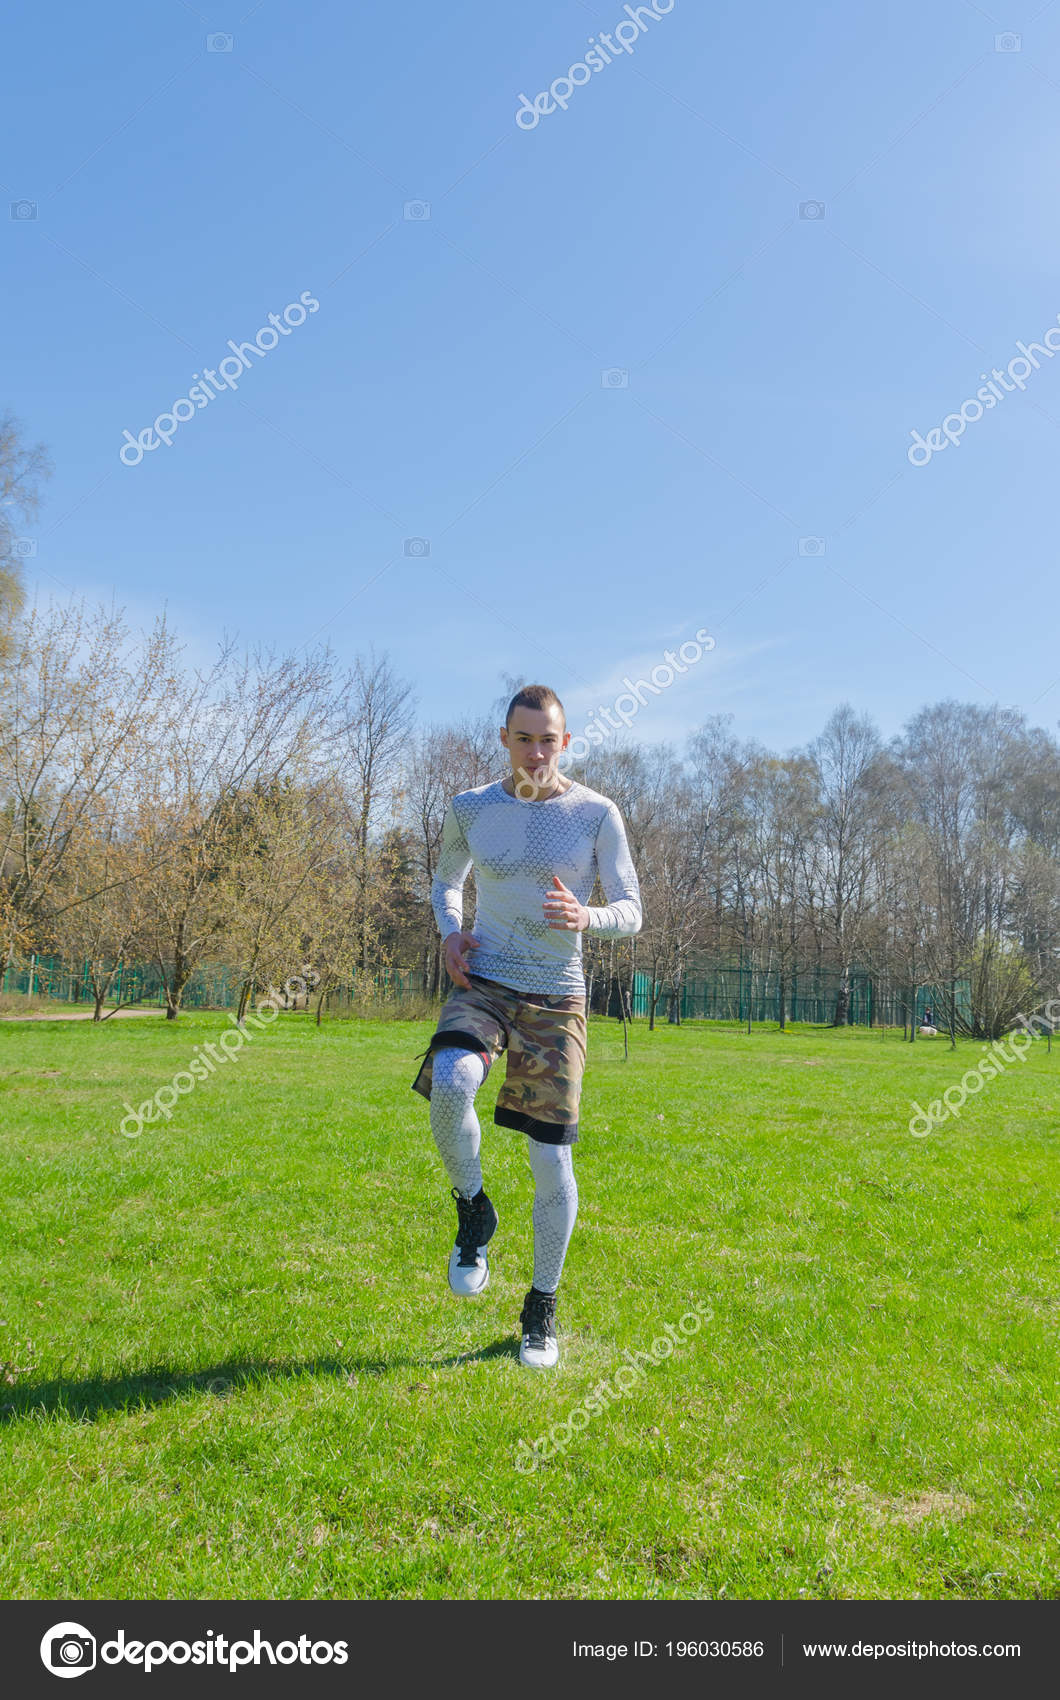 ce7d0522519 Strong Man White Sports Clothes Summer Training Park — Stock Photo ...